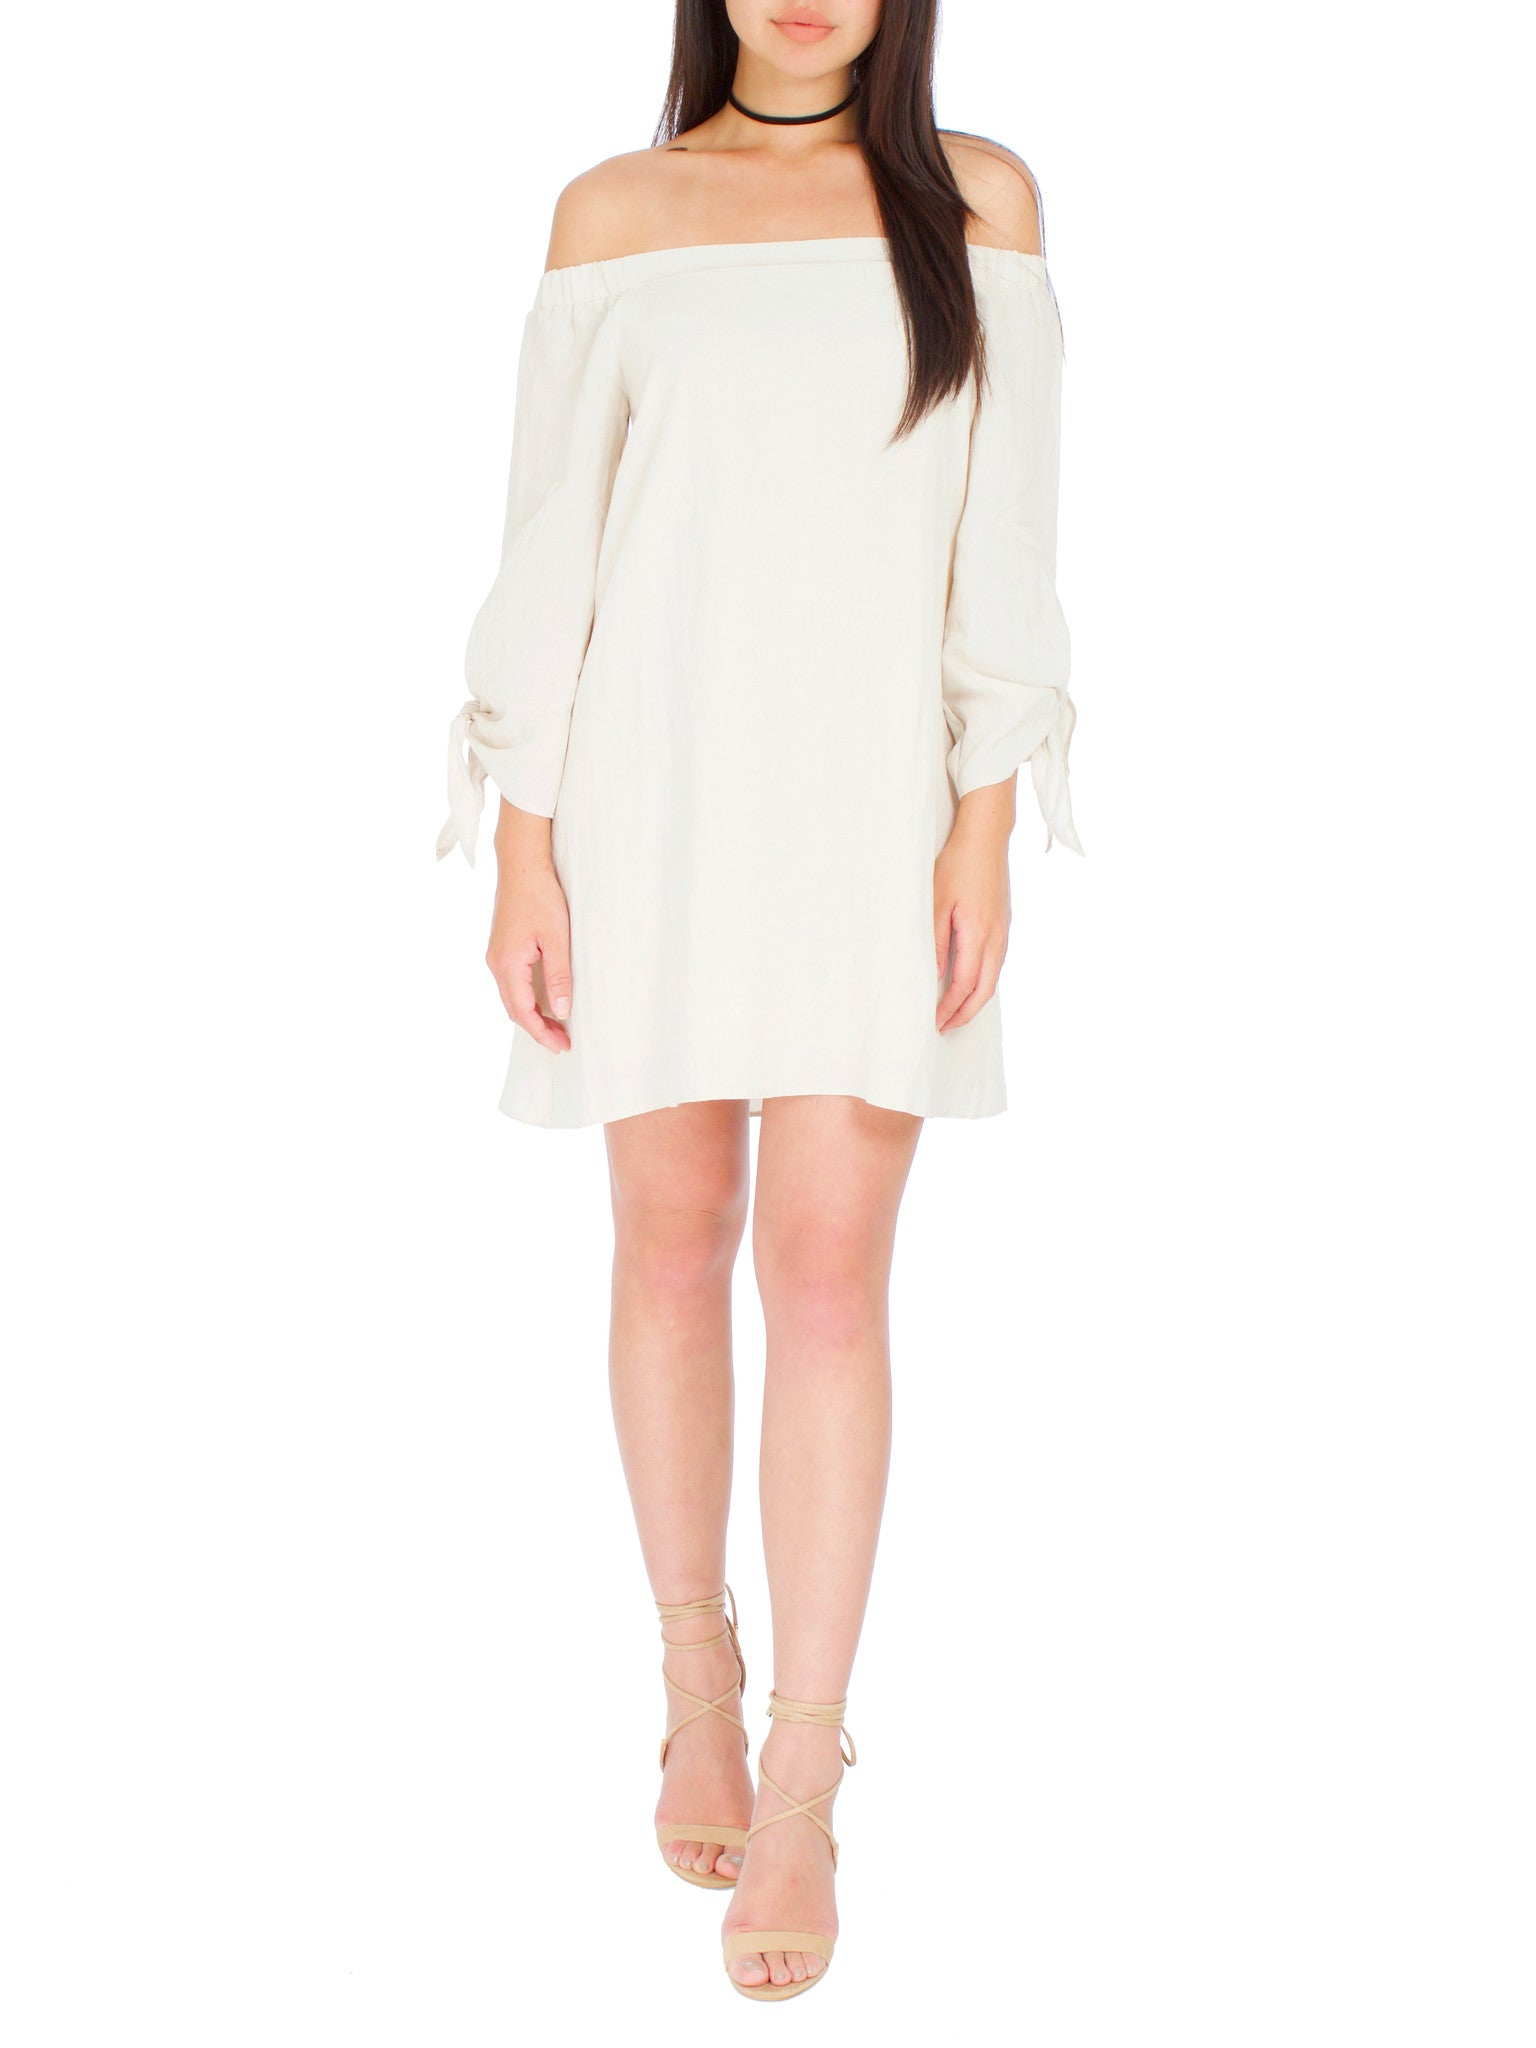 Sandy Off The Shoulder Dress - PRADEGAL